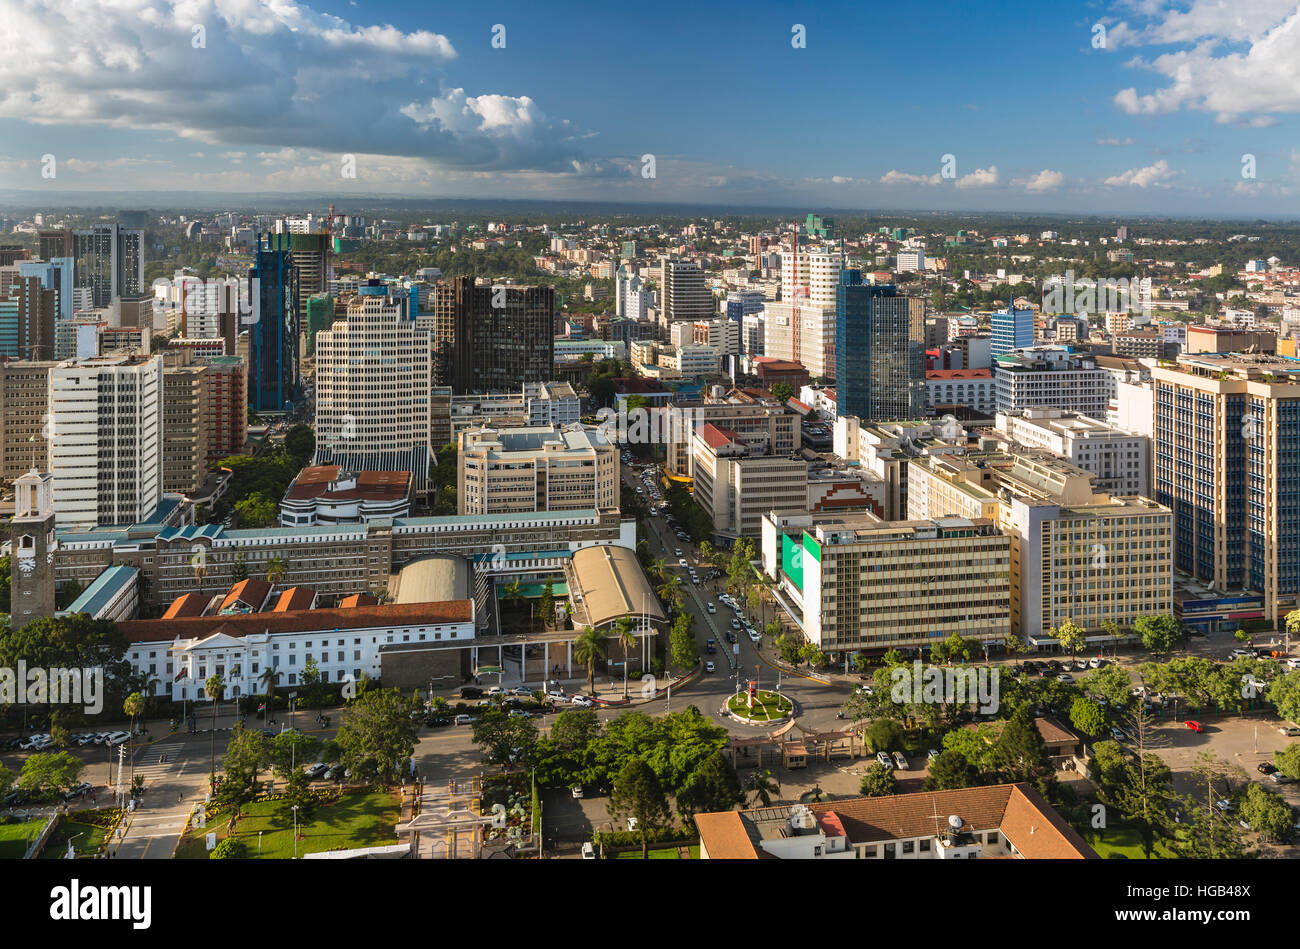 View over City Hall and modern highrises and streets in the northern business district of Nairobi, Kenya. - Stock Image